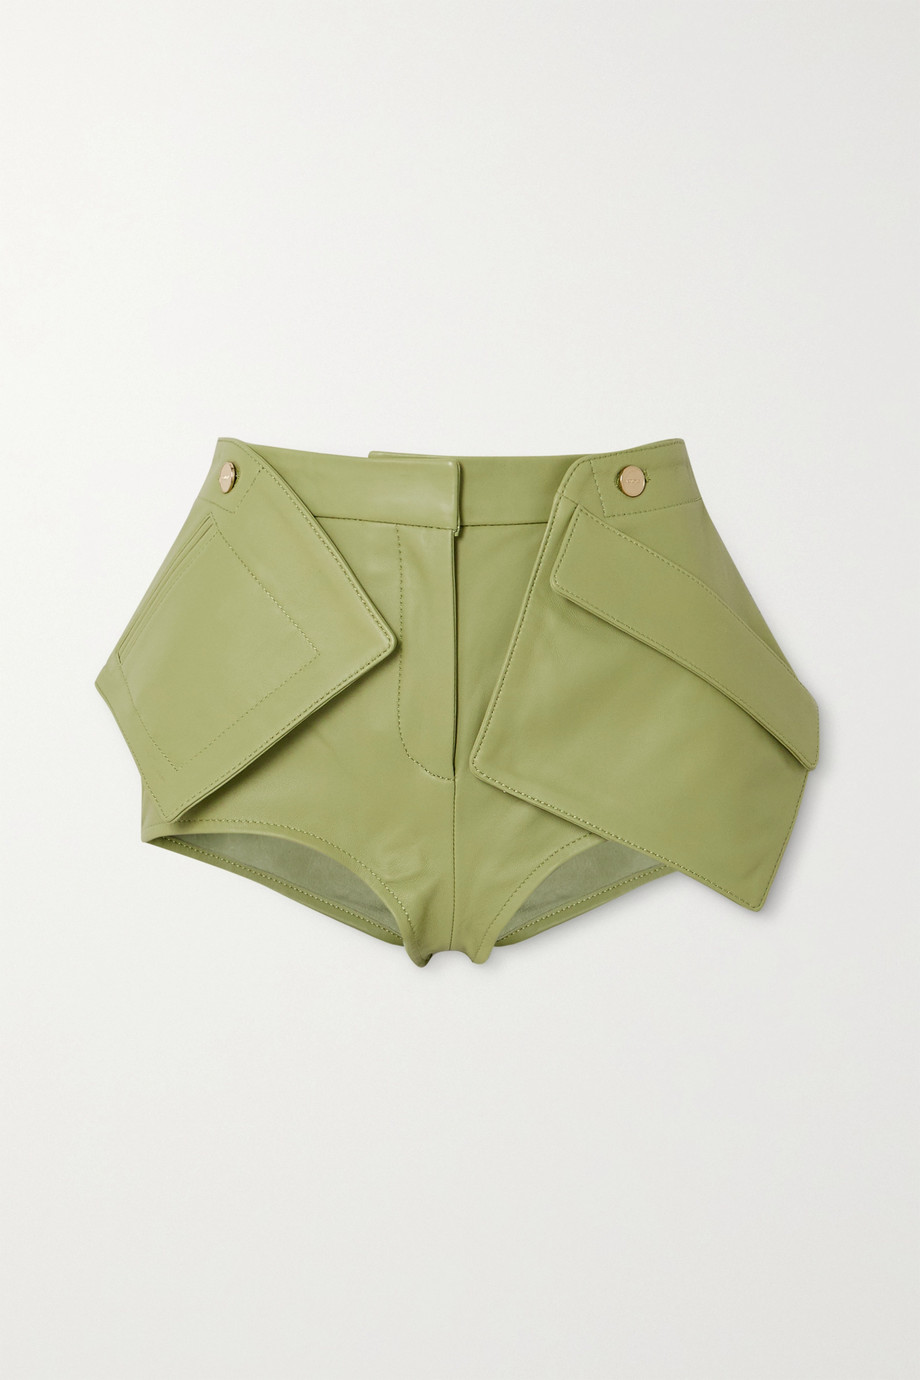 Jacquemus Le Short Boca paneled leather shorts